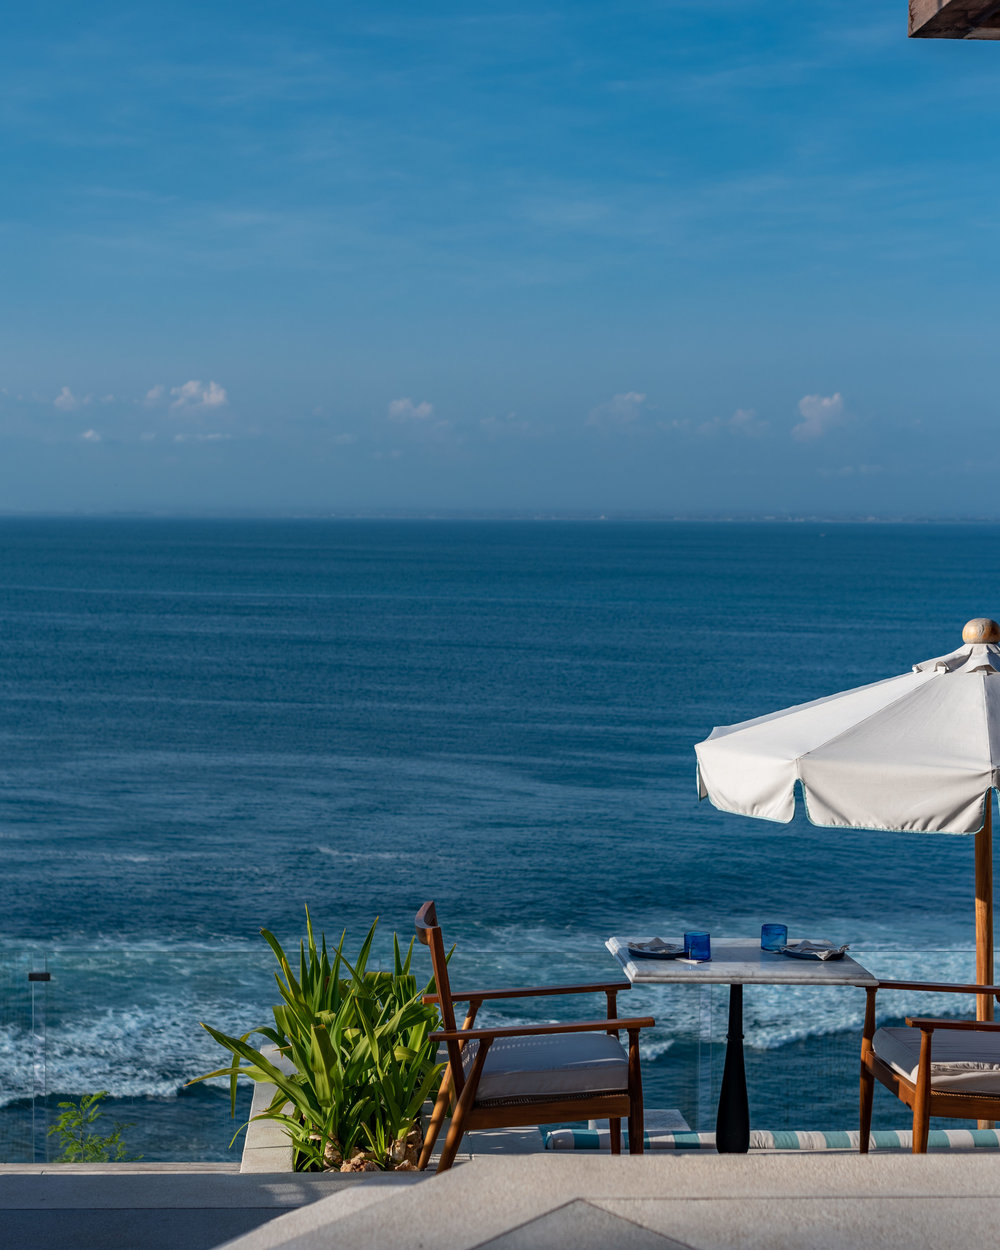 Unbeatable View of the Ocean  Ulu Cliffhouse - Uluwatu, Bali